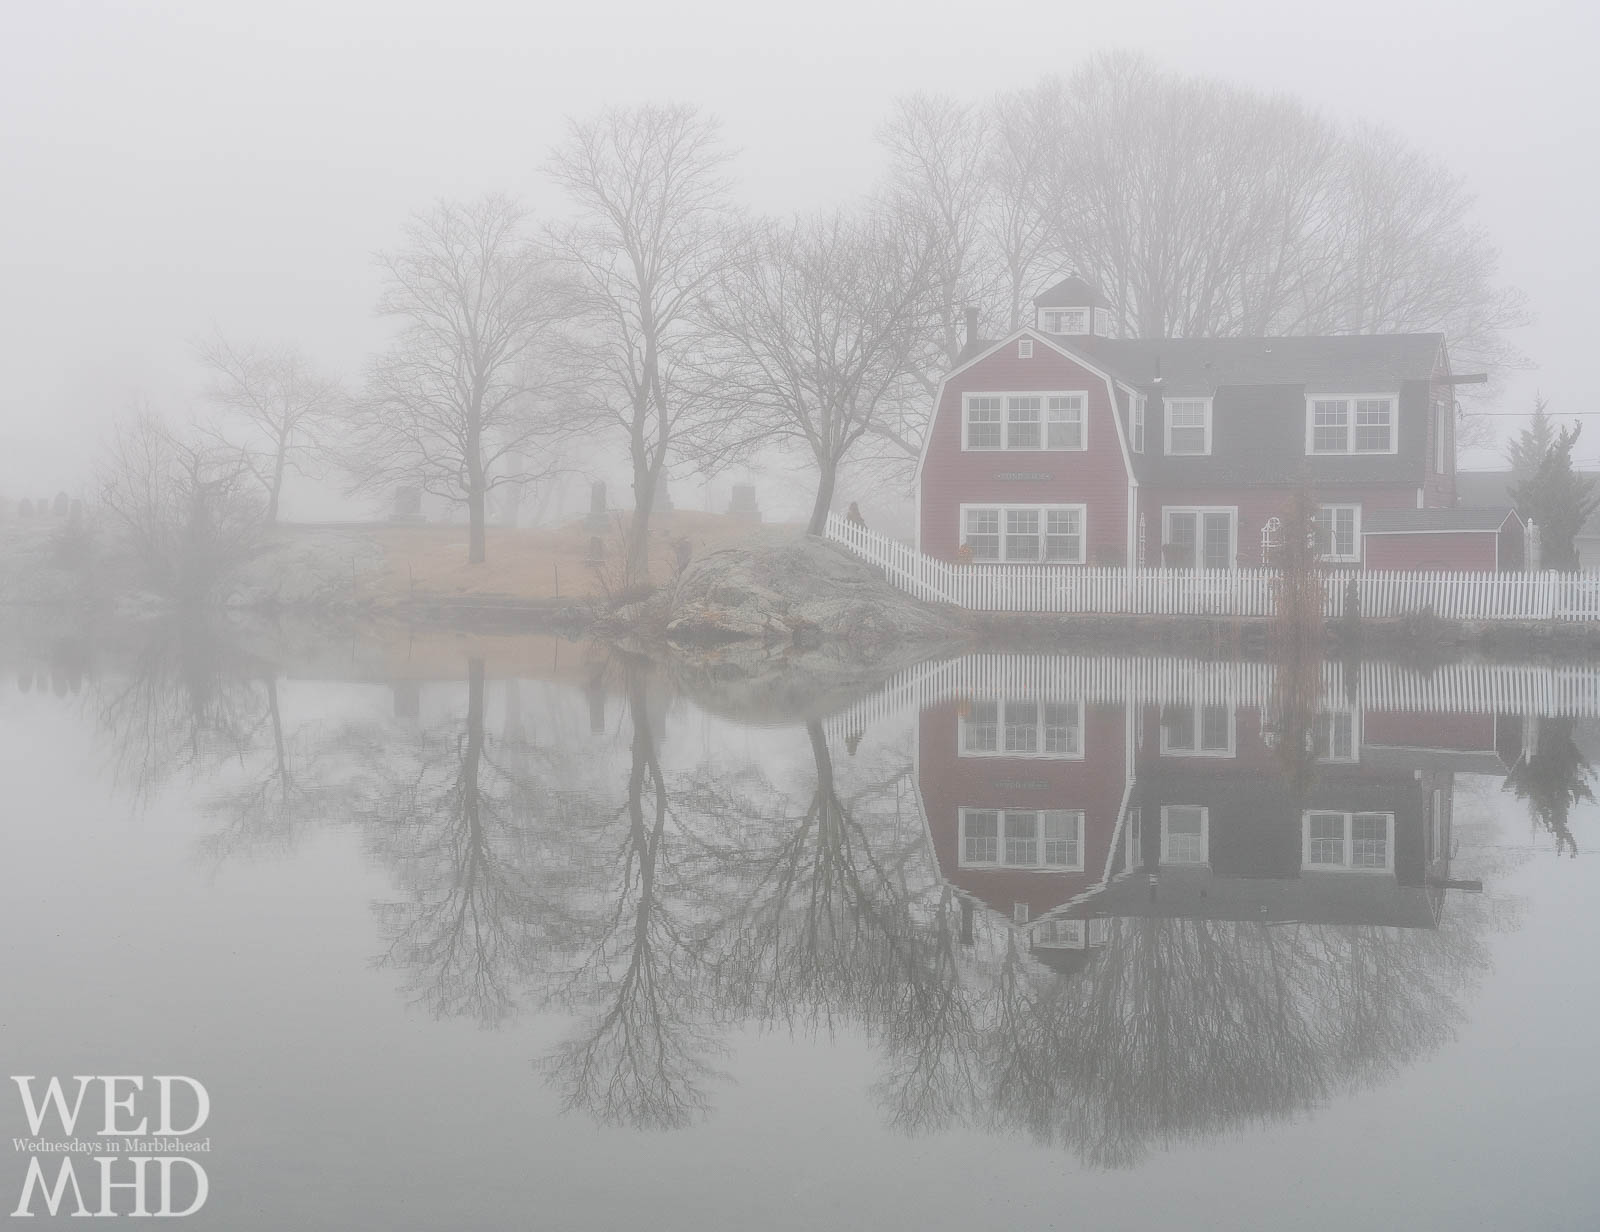 Thick fog adds a sense of isolation and calm on this foggy morning at Redd's Pond